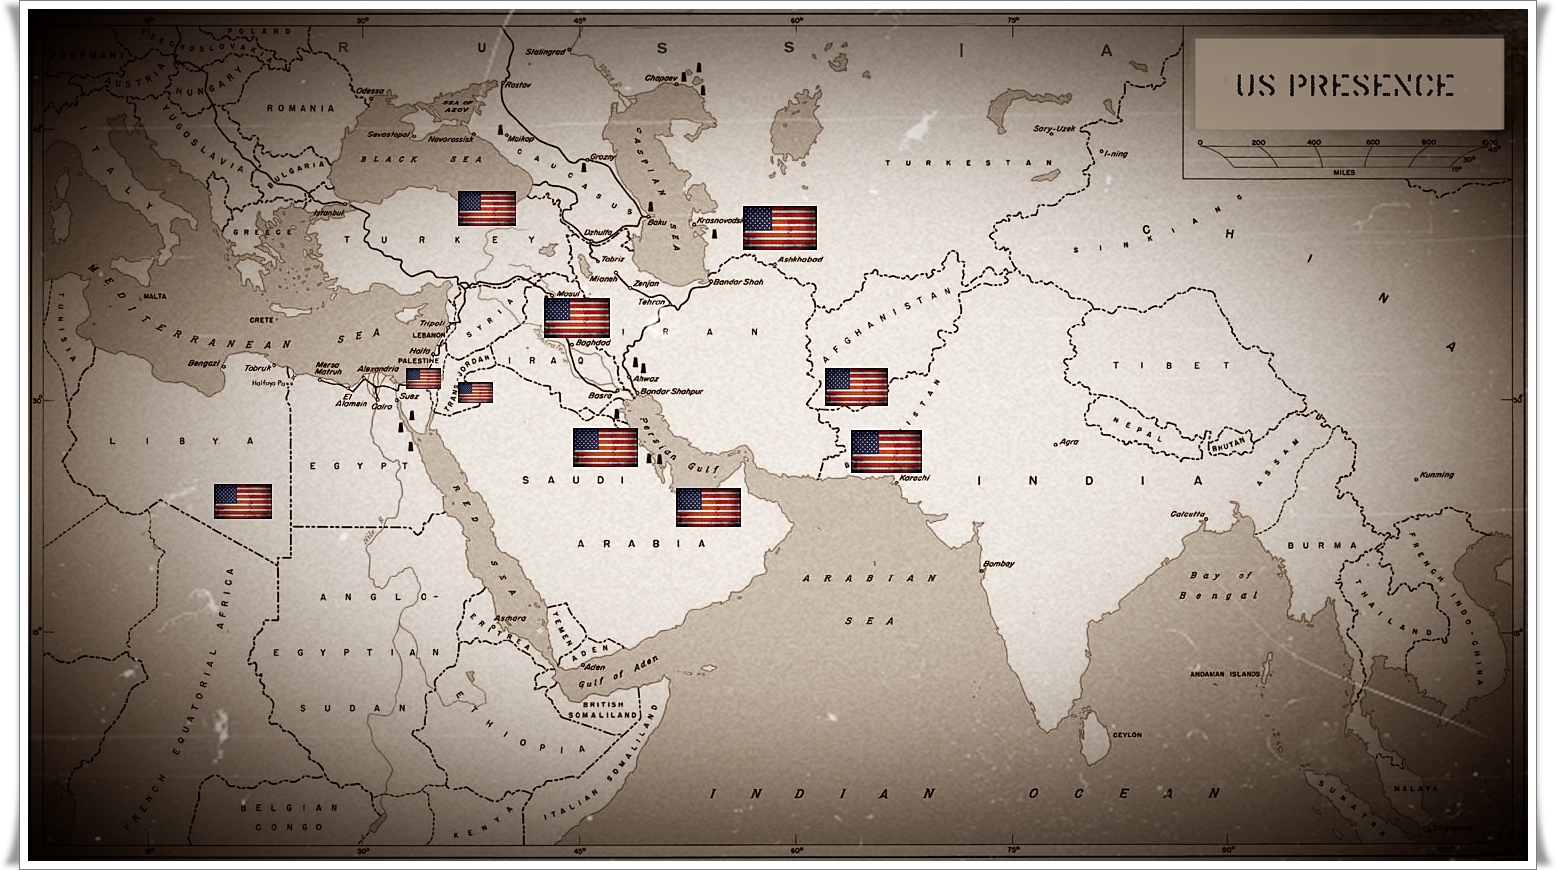 U.S. Makes Wars with Foreign Hands. Part 2: Wars in the Middle East